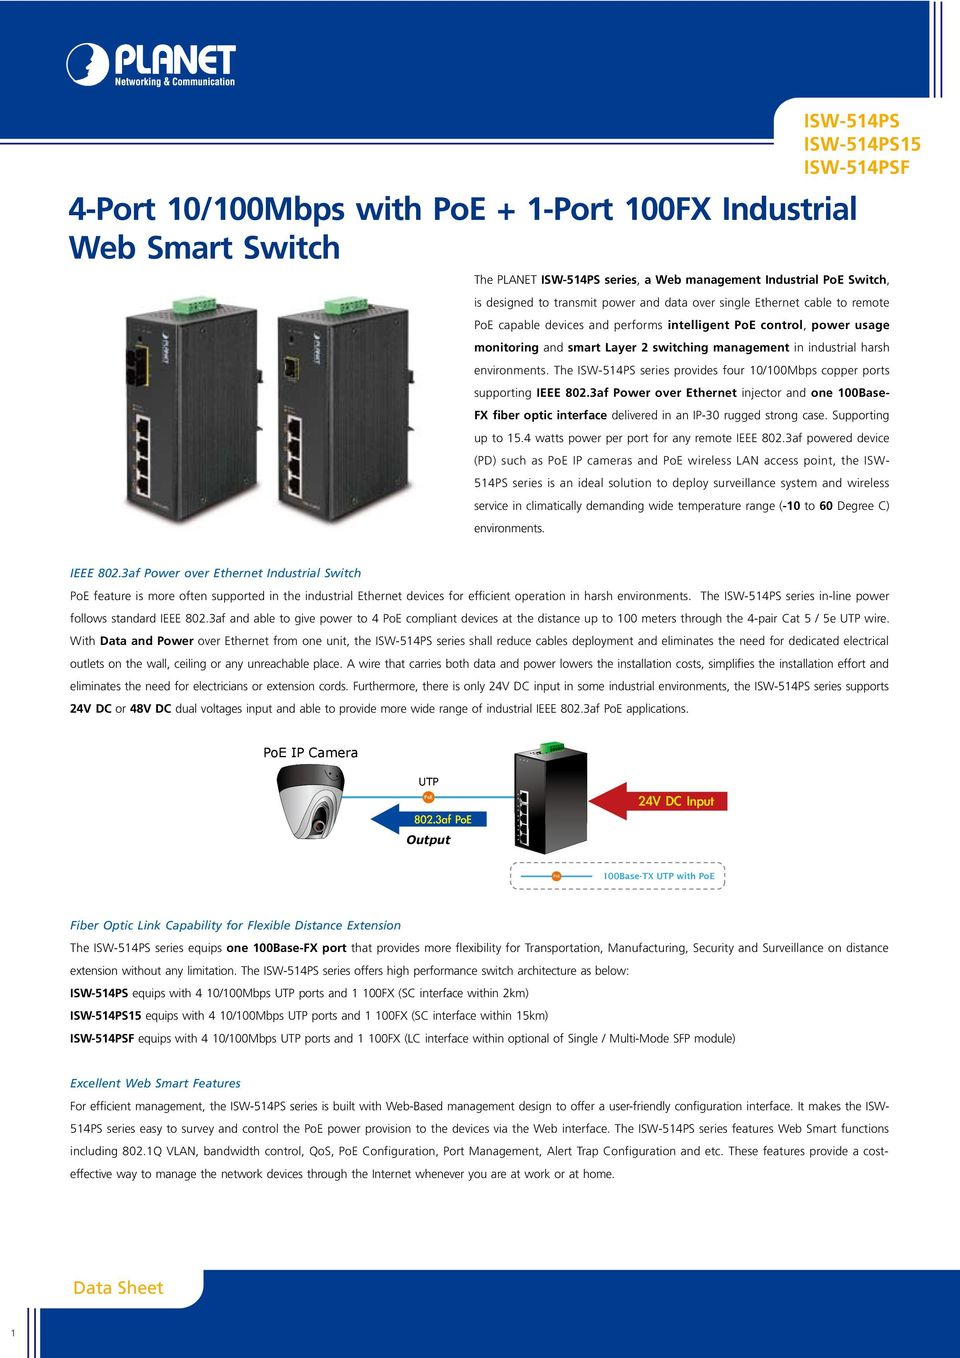 The series provides four 10/Mbps copper ports supporting IEEE 802.3af Power over Ethernet injector and one Base- FX fiber optic interface delivered in an IP-30 rugged strong case. Supporting up to 15.